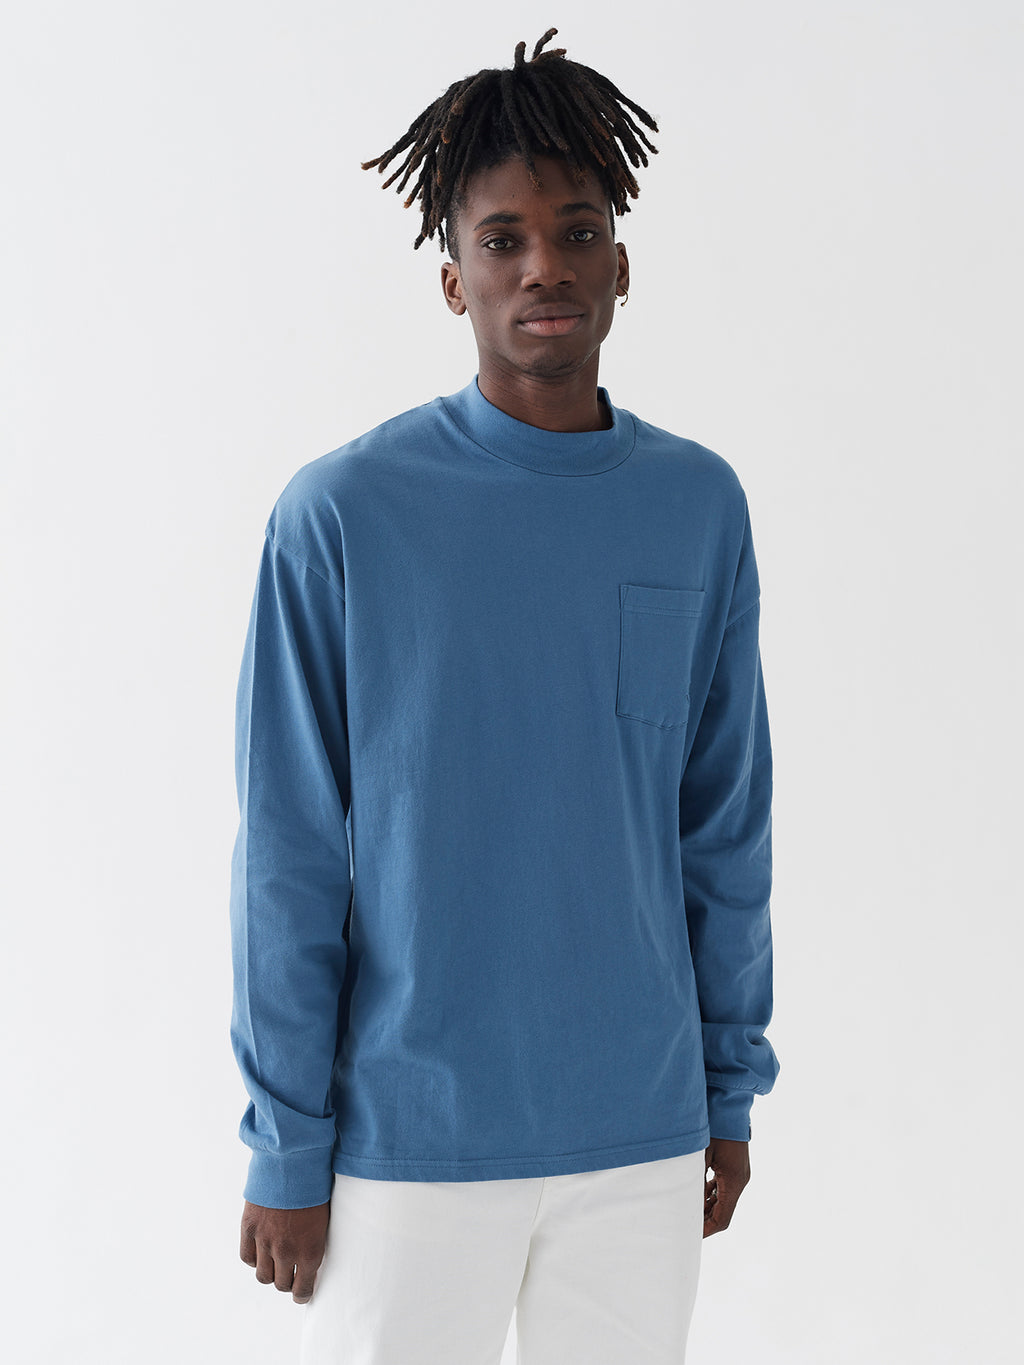 LO Long Sleeve Pocket T-Shirt